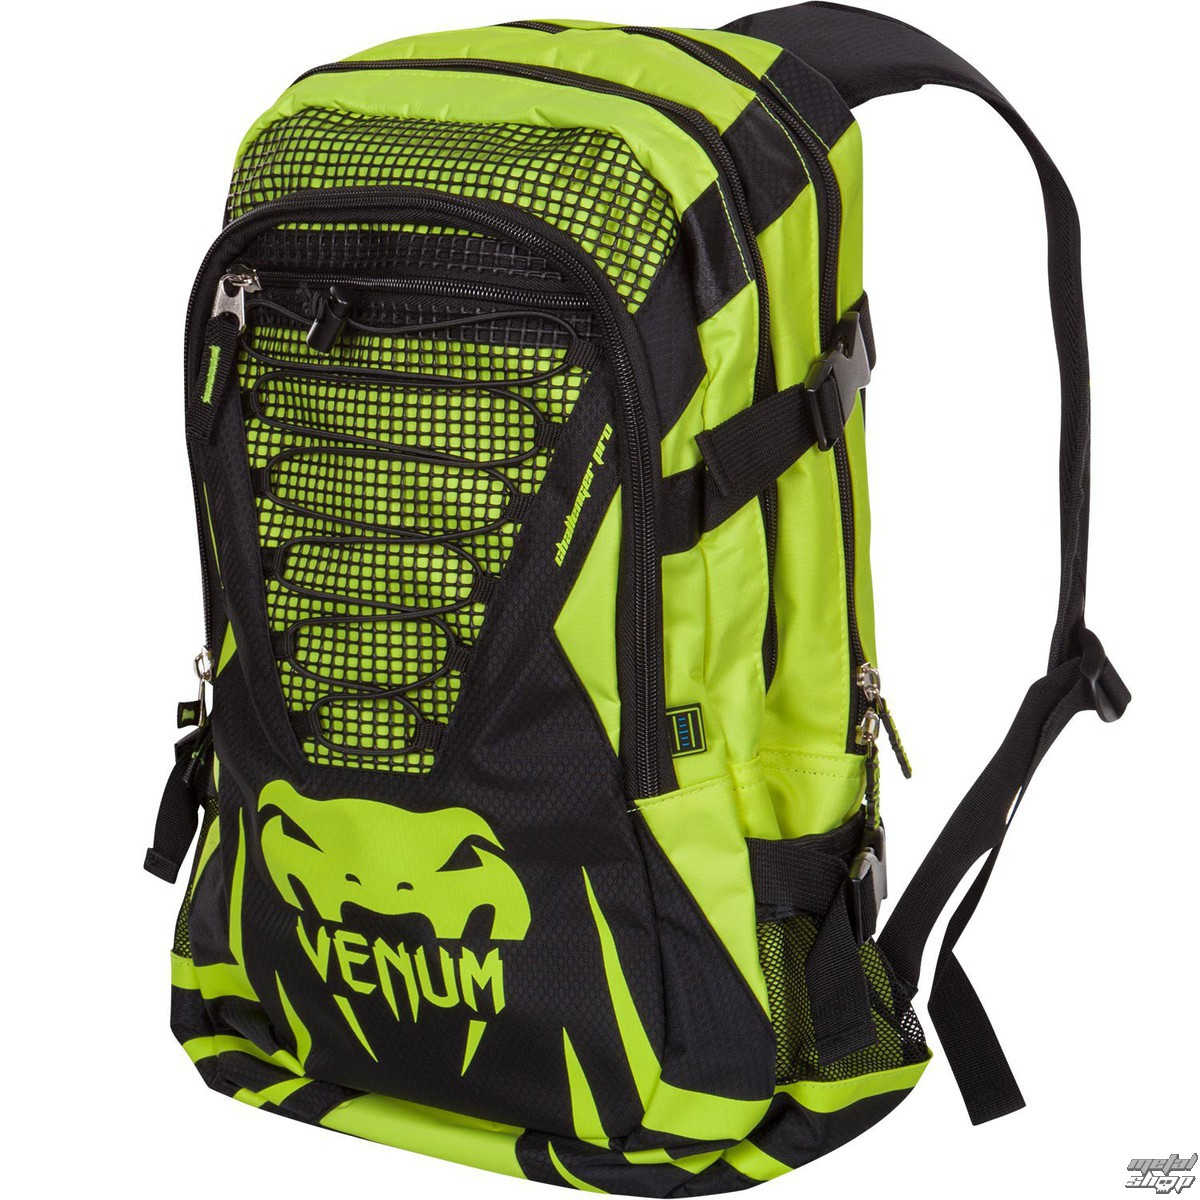 batoh VENUM - Challenger - Yellow Black - EU-VENUM-2122-YELLOW